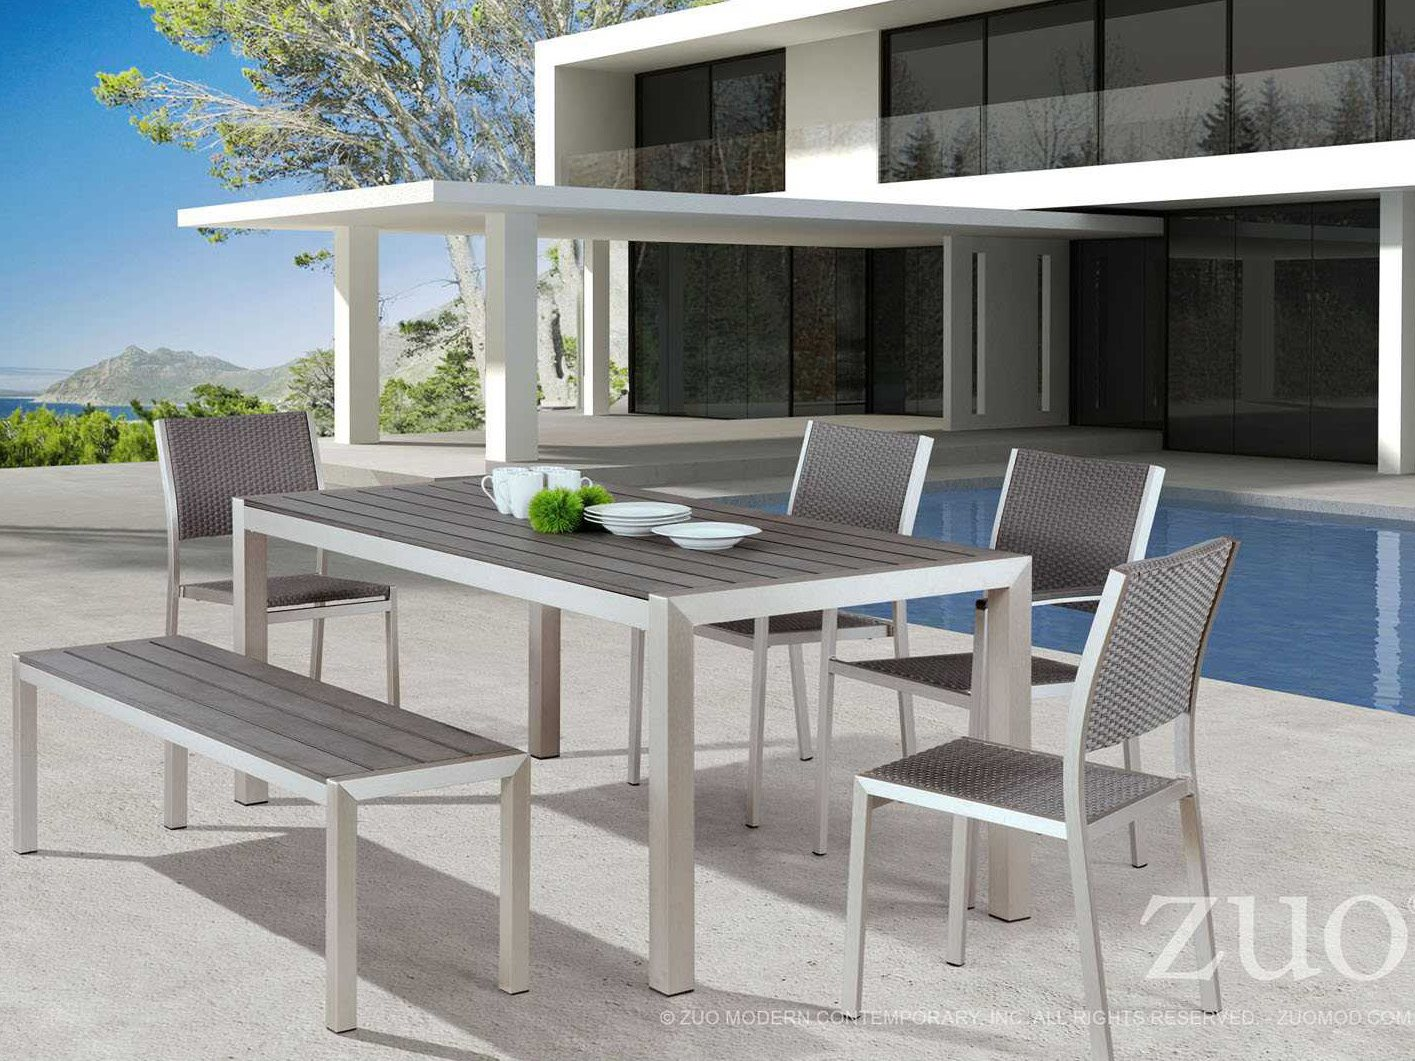 Zuo outdoor metropolitan aluminum faux wood dining set for Outdoor lanai furniture